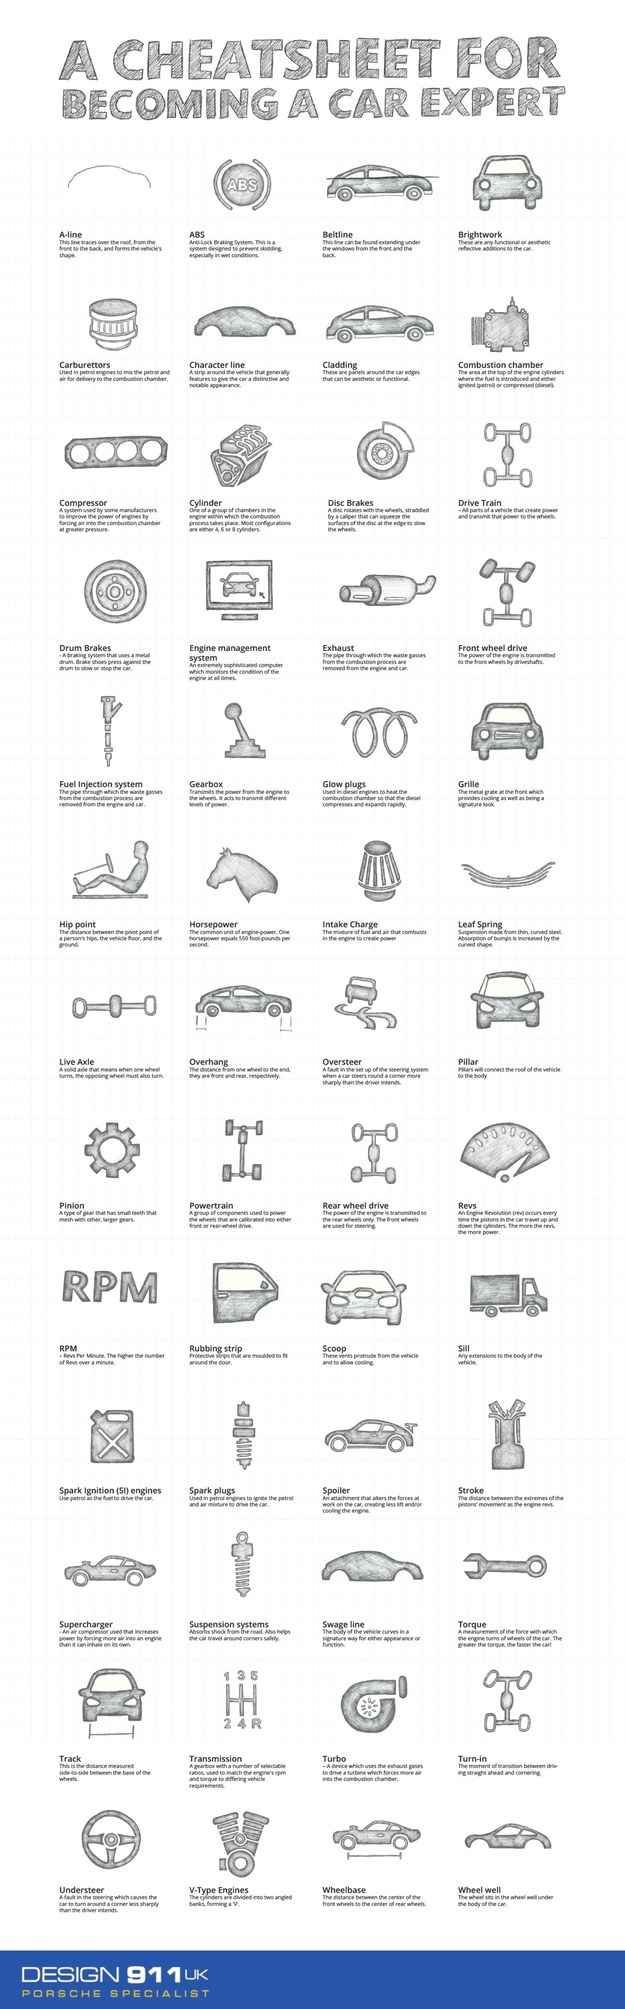 21 Genius Car Cheat Sheets Every Driver Needs To See Woodworking Projects That Sell Woodworking Screws And Bolts [ 2009 x 625 Pixel ]